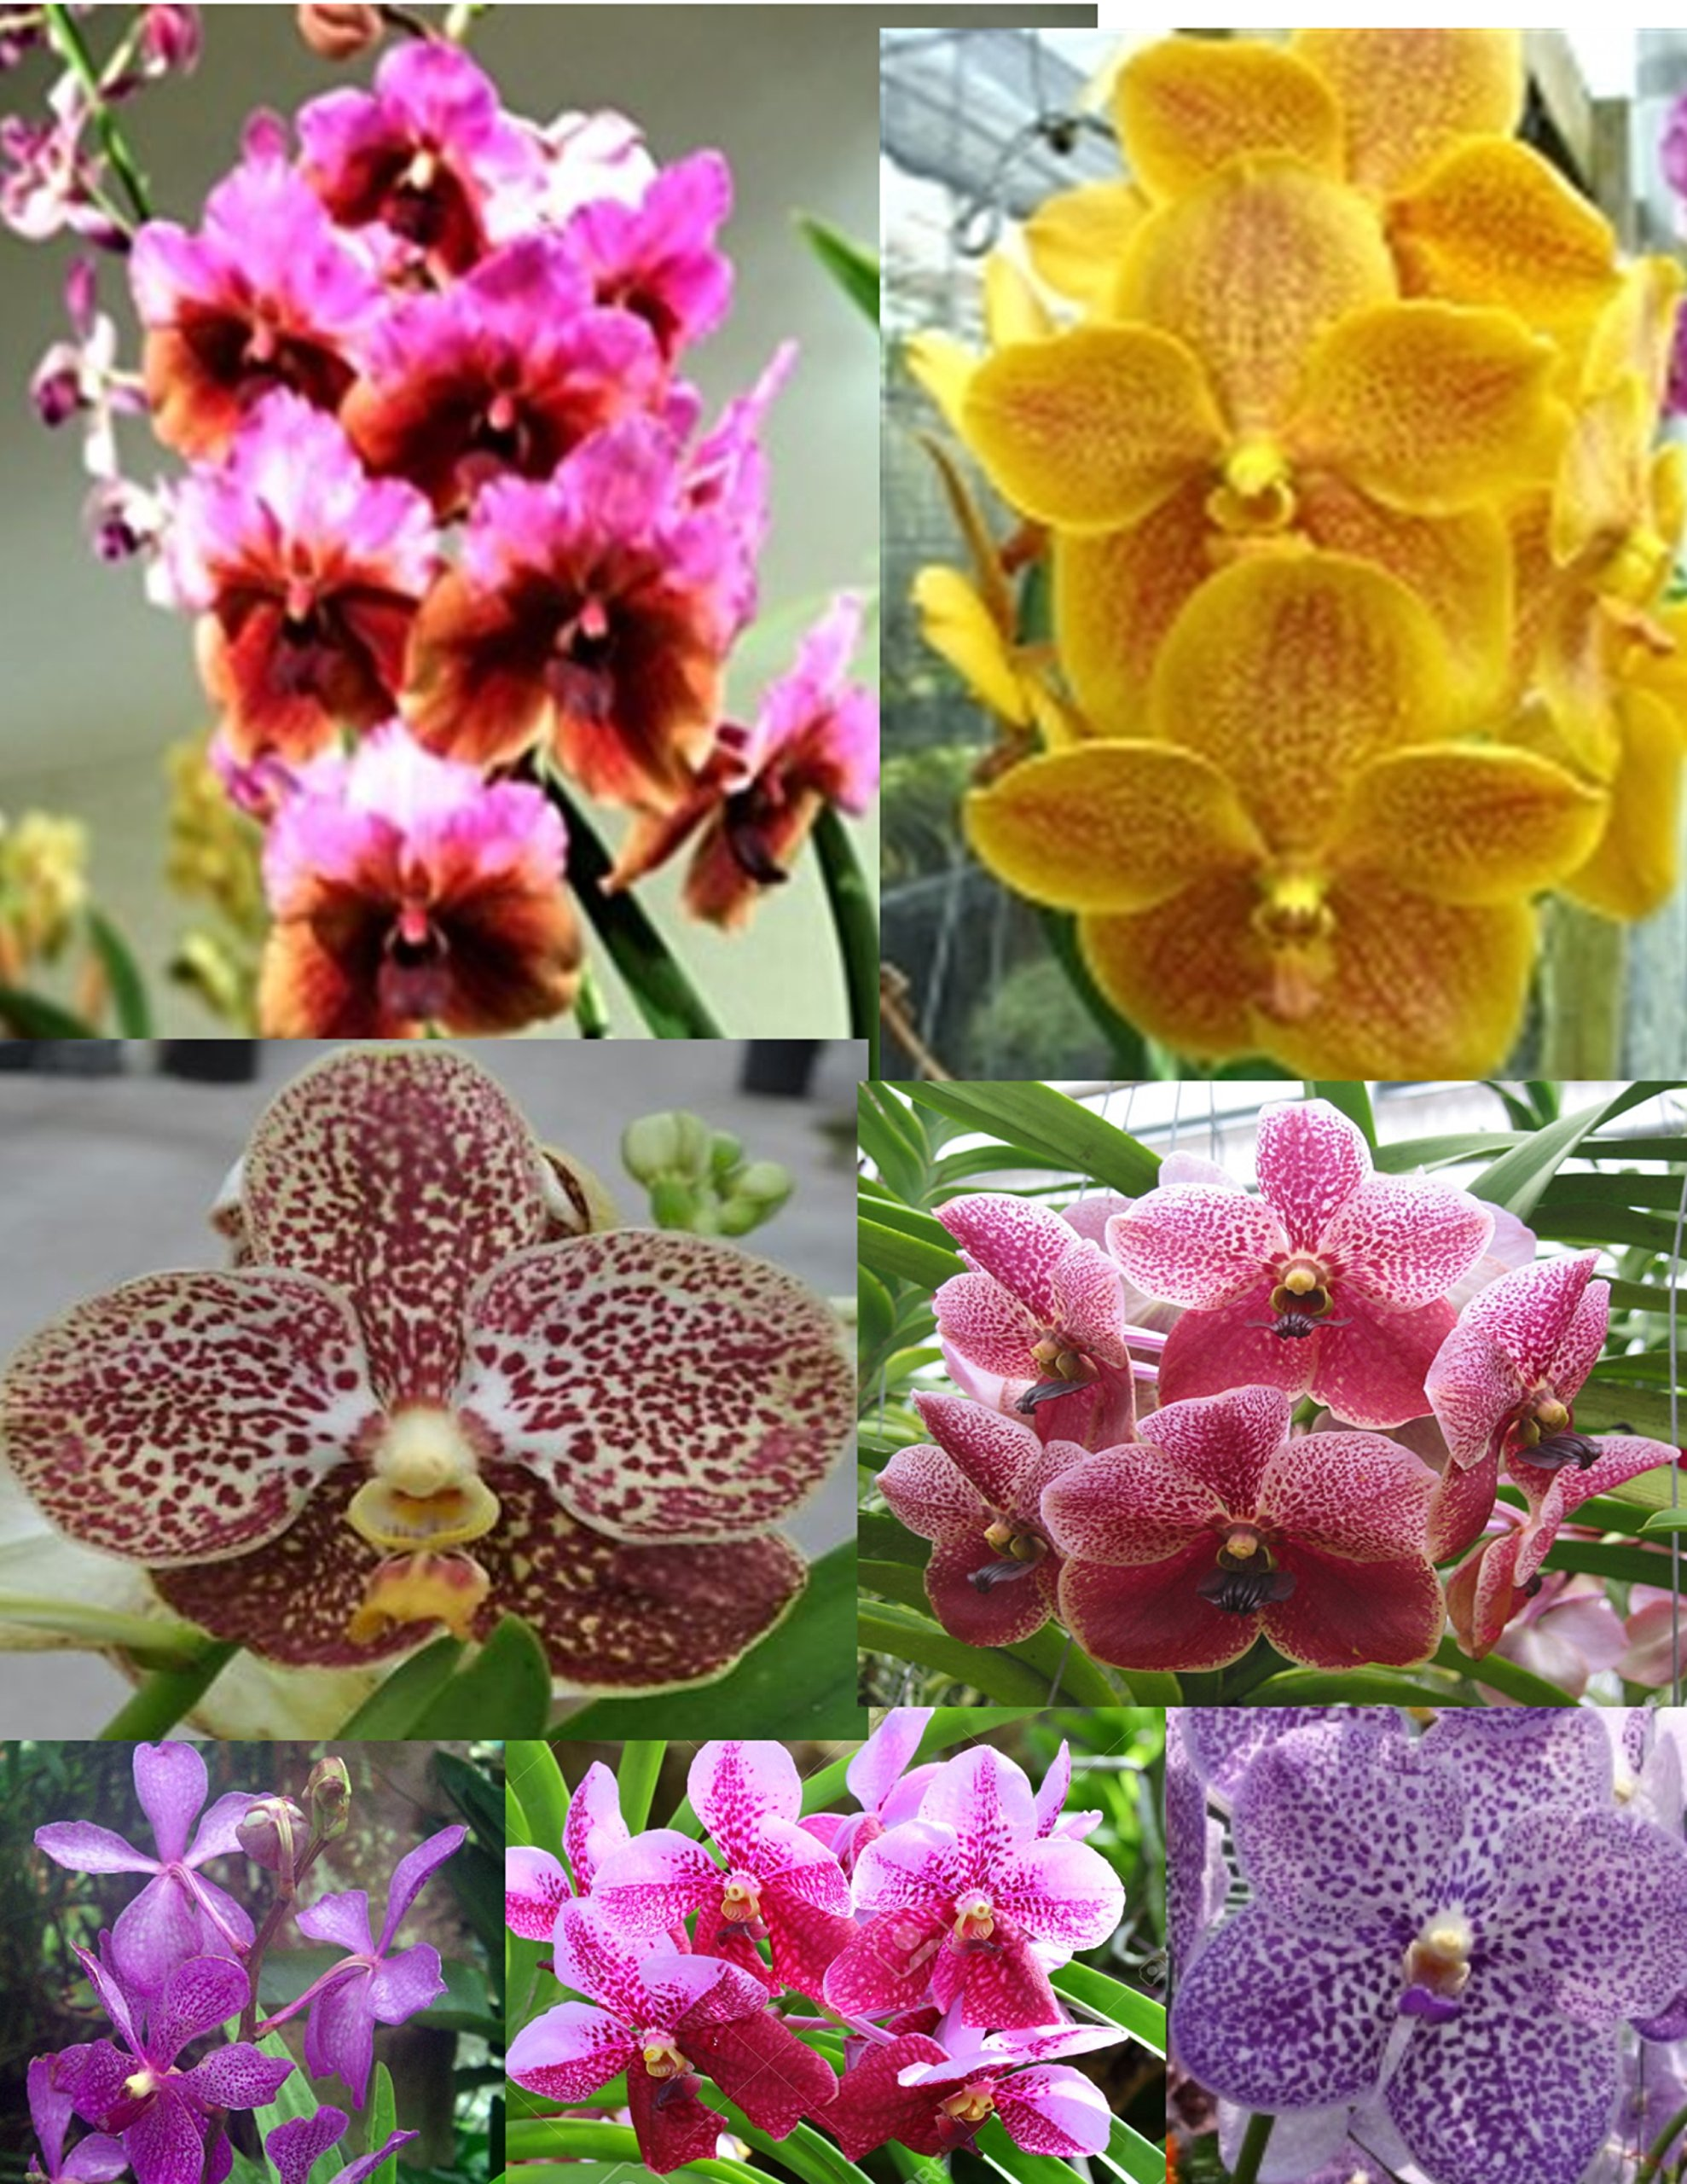 4 Live Orchid Plants to Choose (Vanda) by Angel's Special